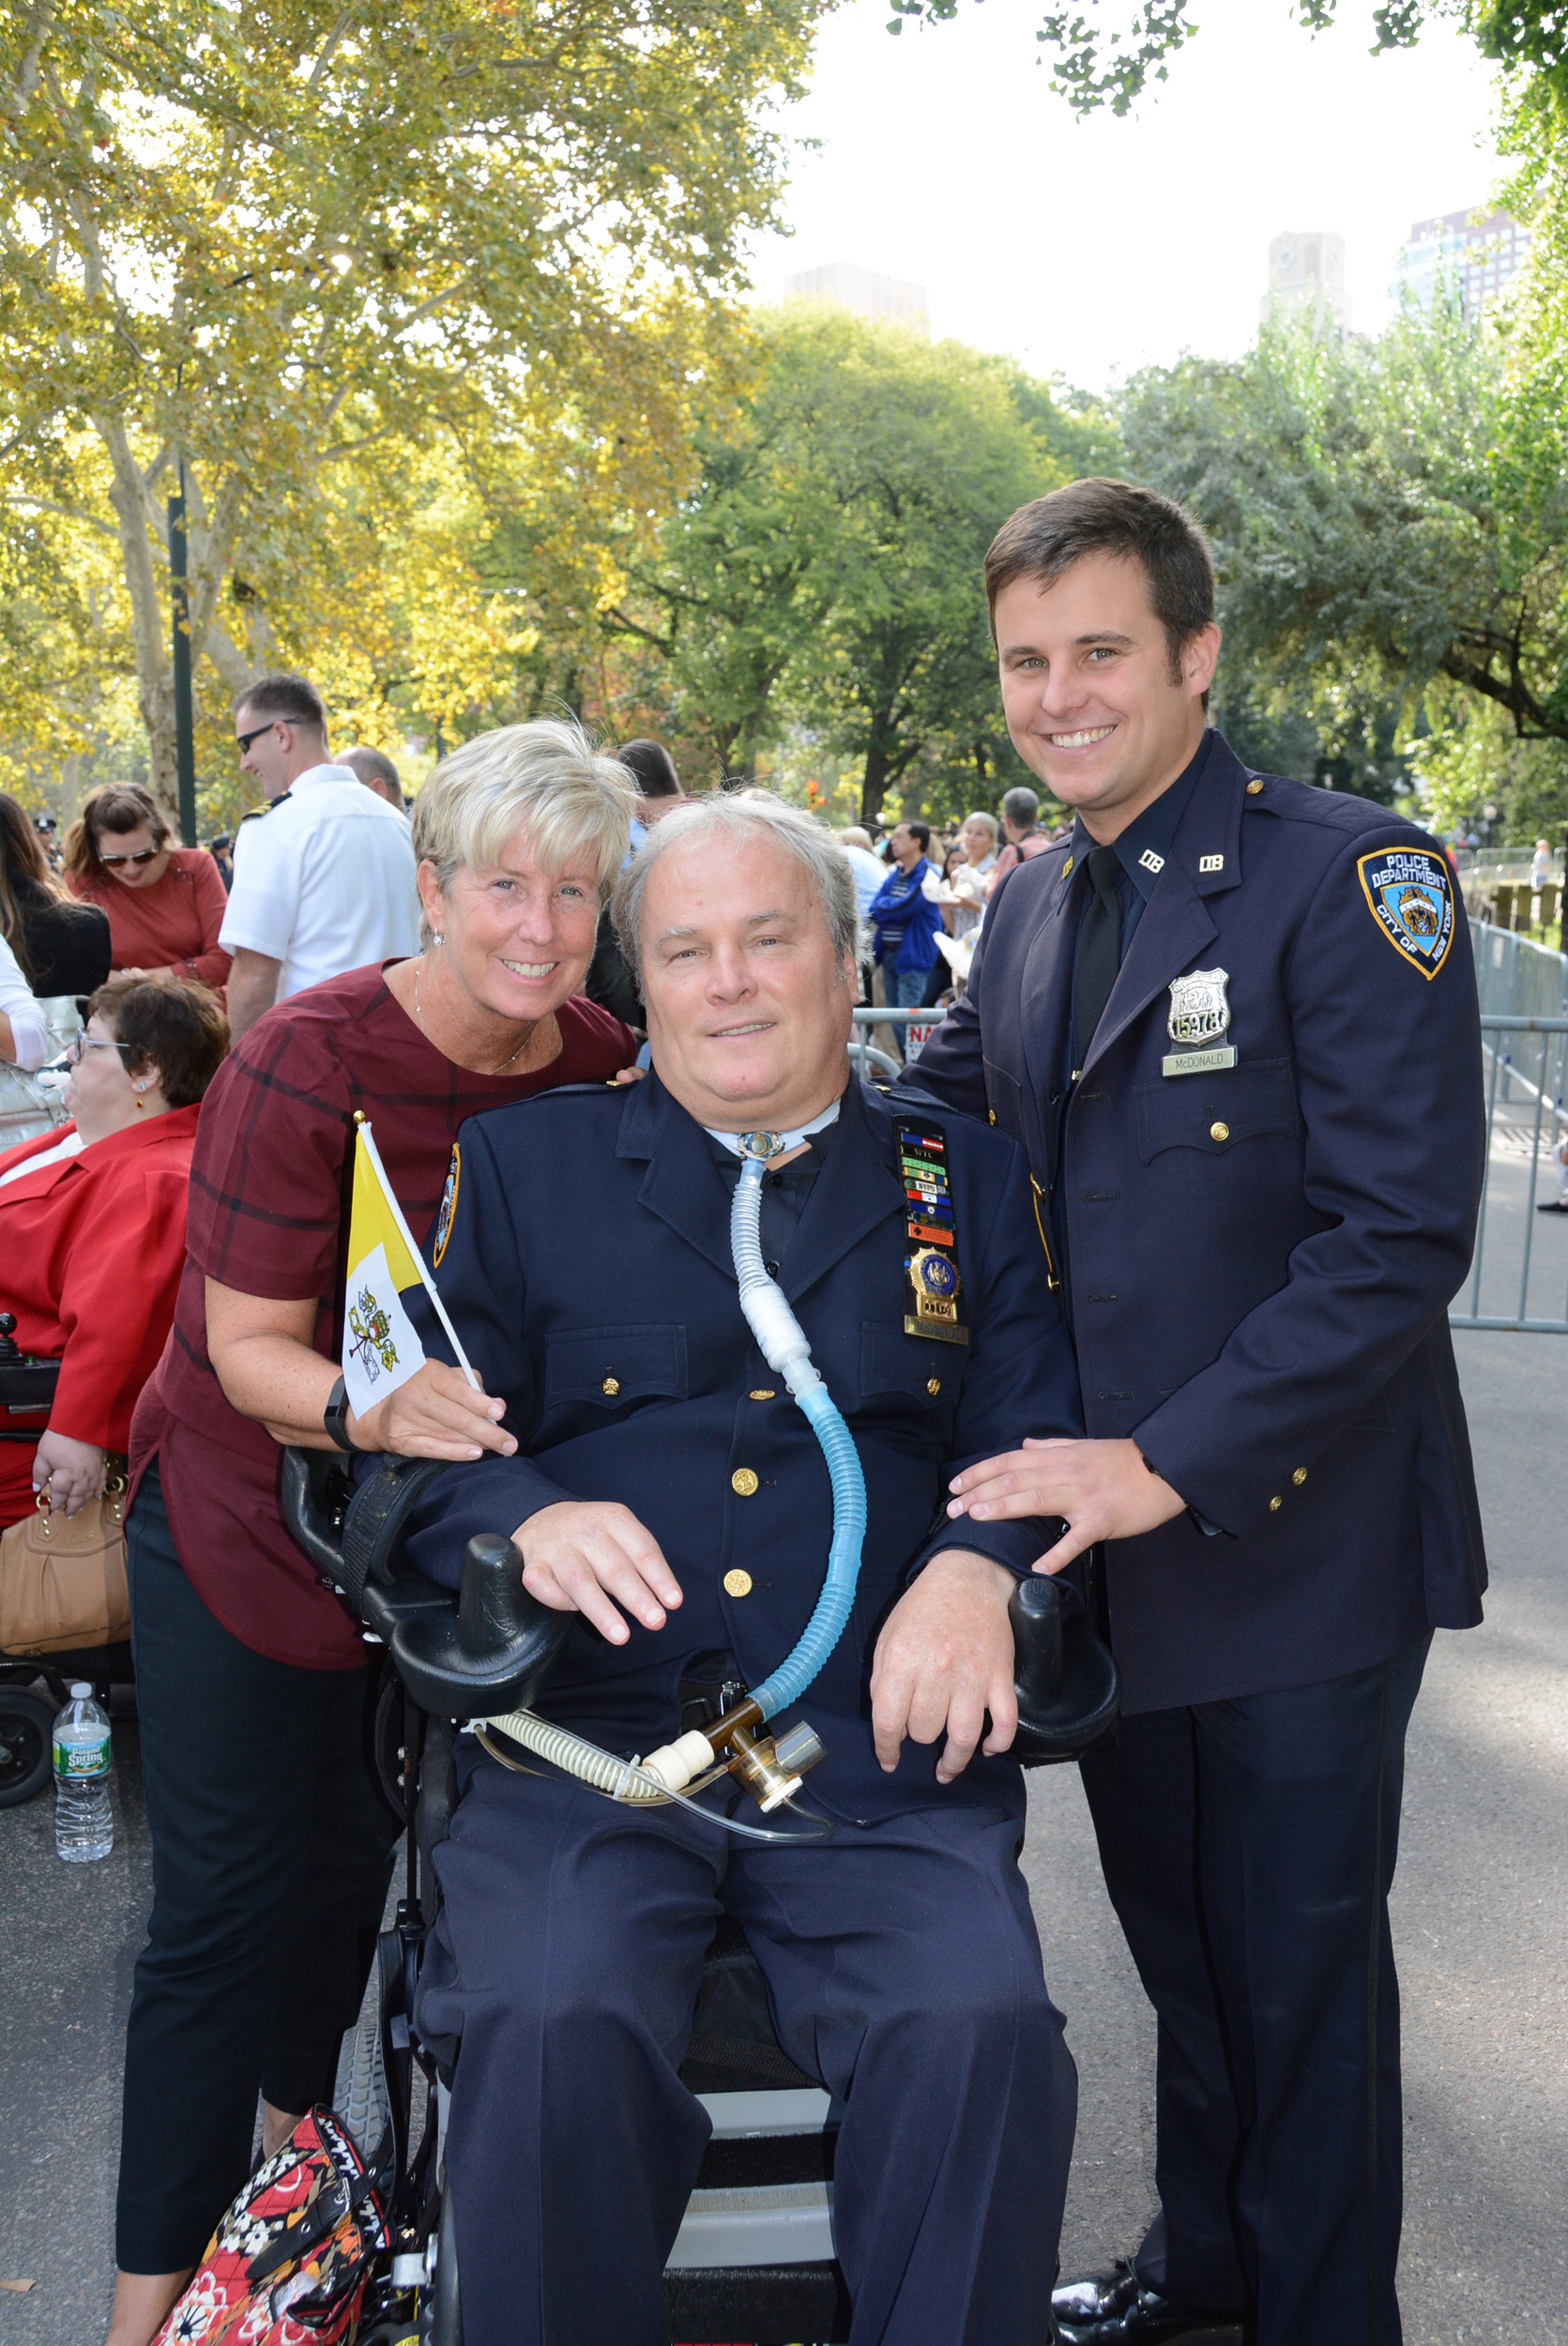 NYPD Det. Steven McDonald, center, with his wife, Malverne Mayor Patti Ann McDonald and their son, Connor McDonald in Central Park in 2015.